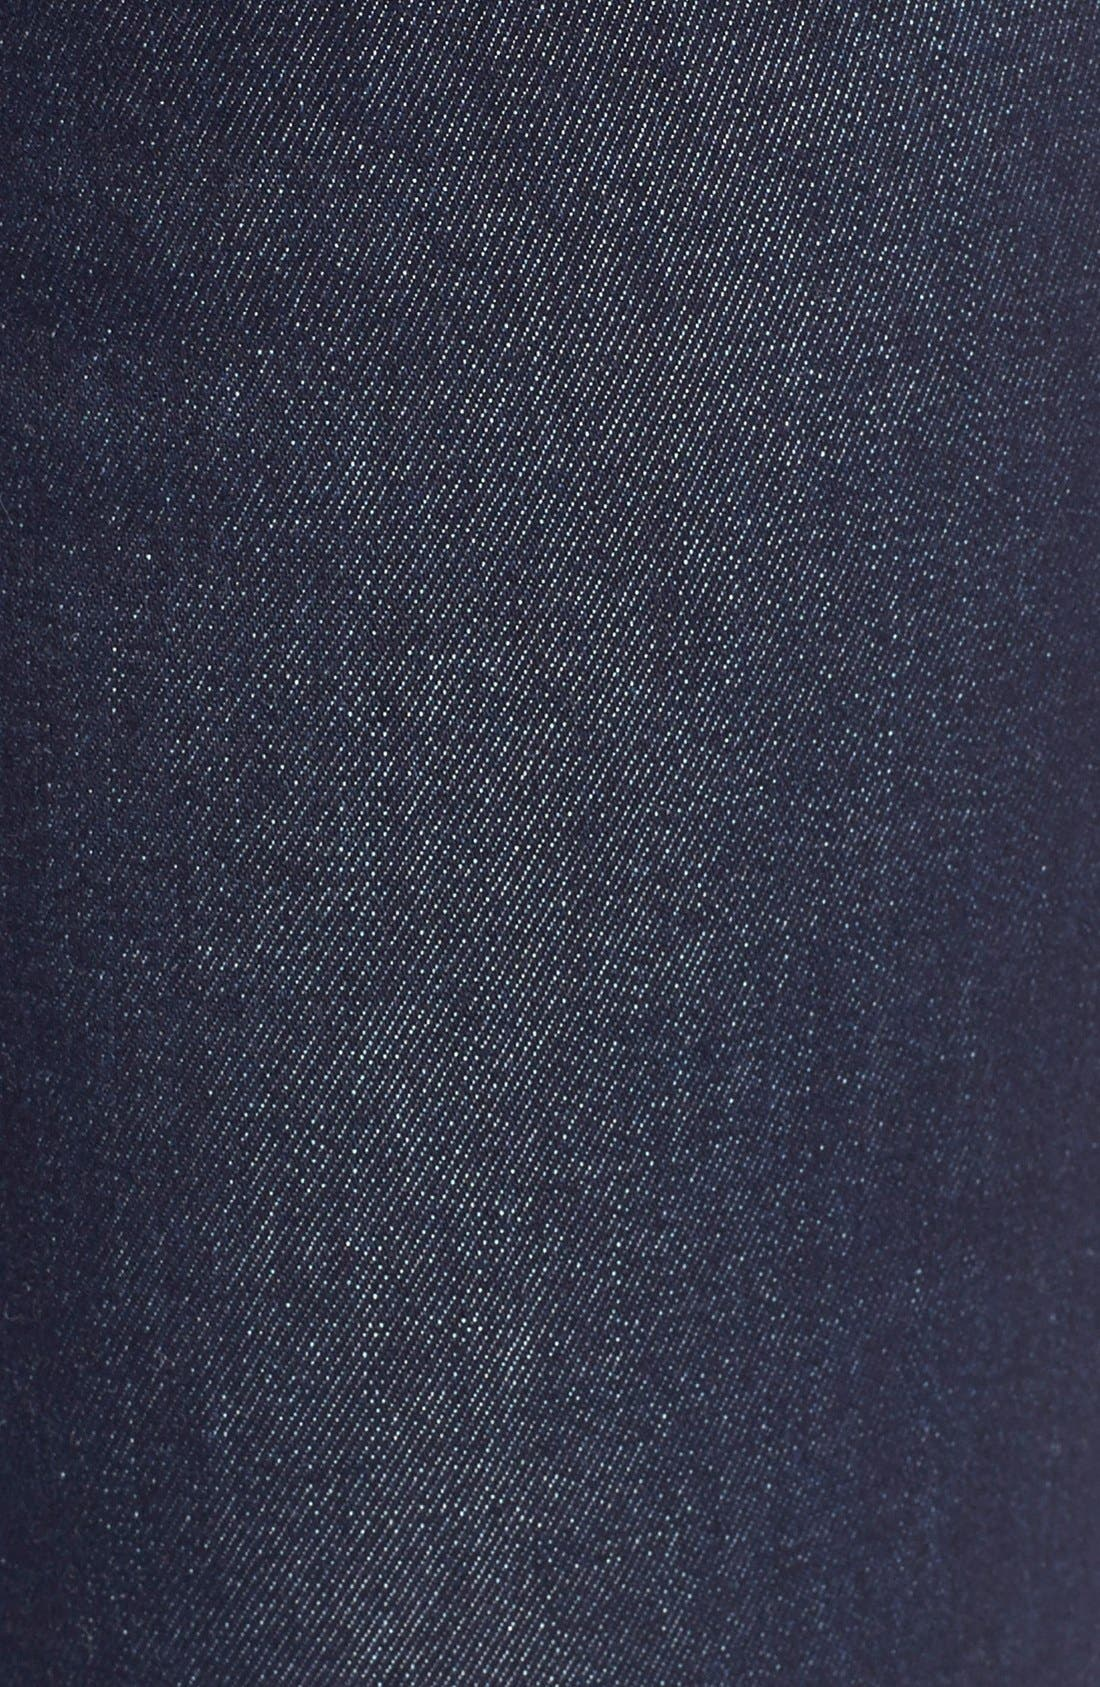 Alternate Image 5  - Citizens of Humanity 'Sculpt - Rocket' High Rise Skinny Jeans (Clean Blue)